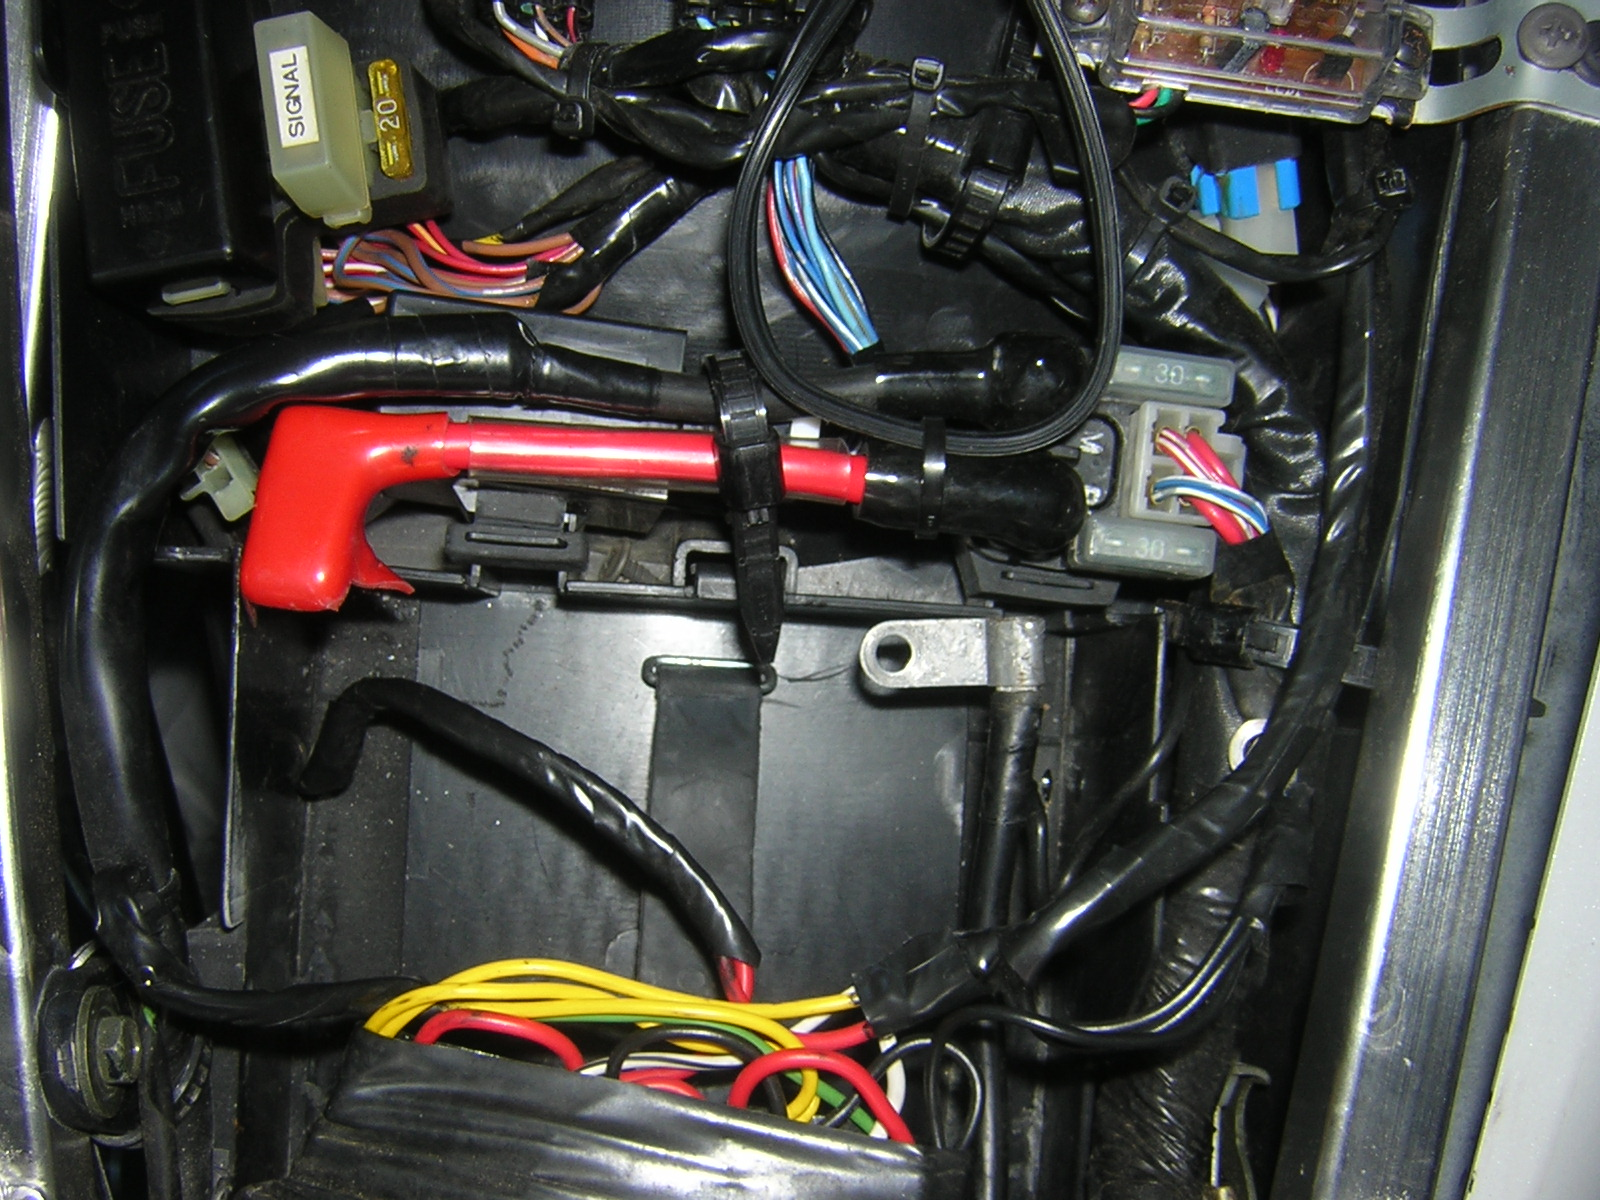 07 yamaha r6 fuse box location wiring diagram 2000 f150 fuse box diagram 07 yamaha r6 fuse box location